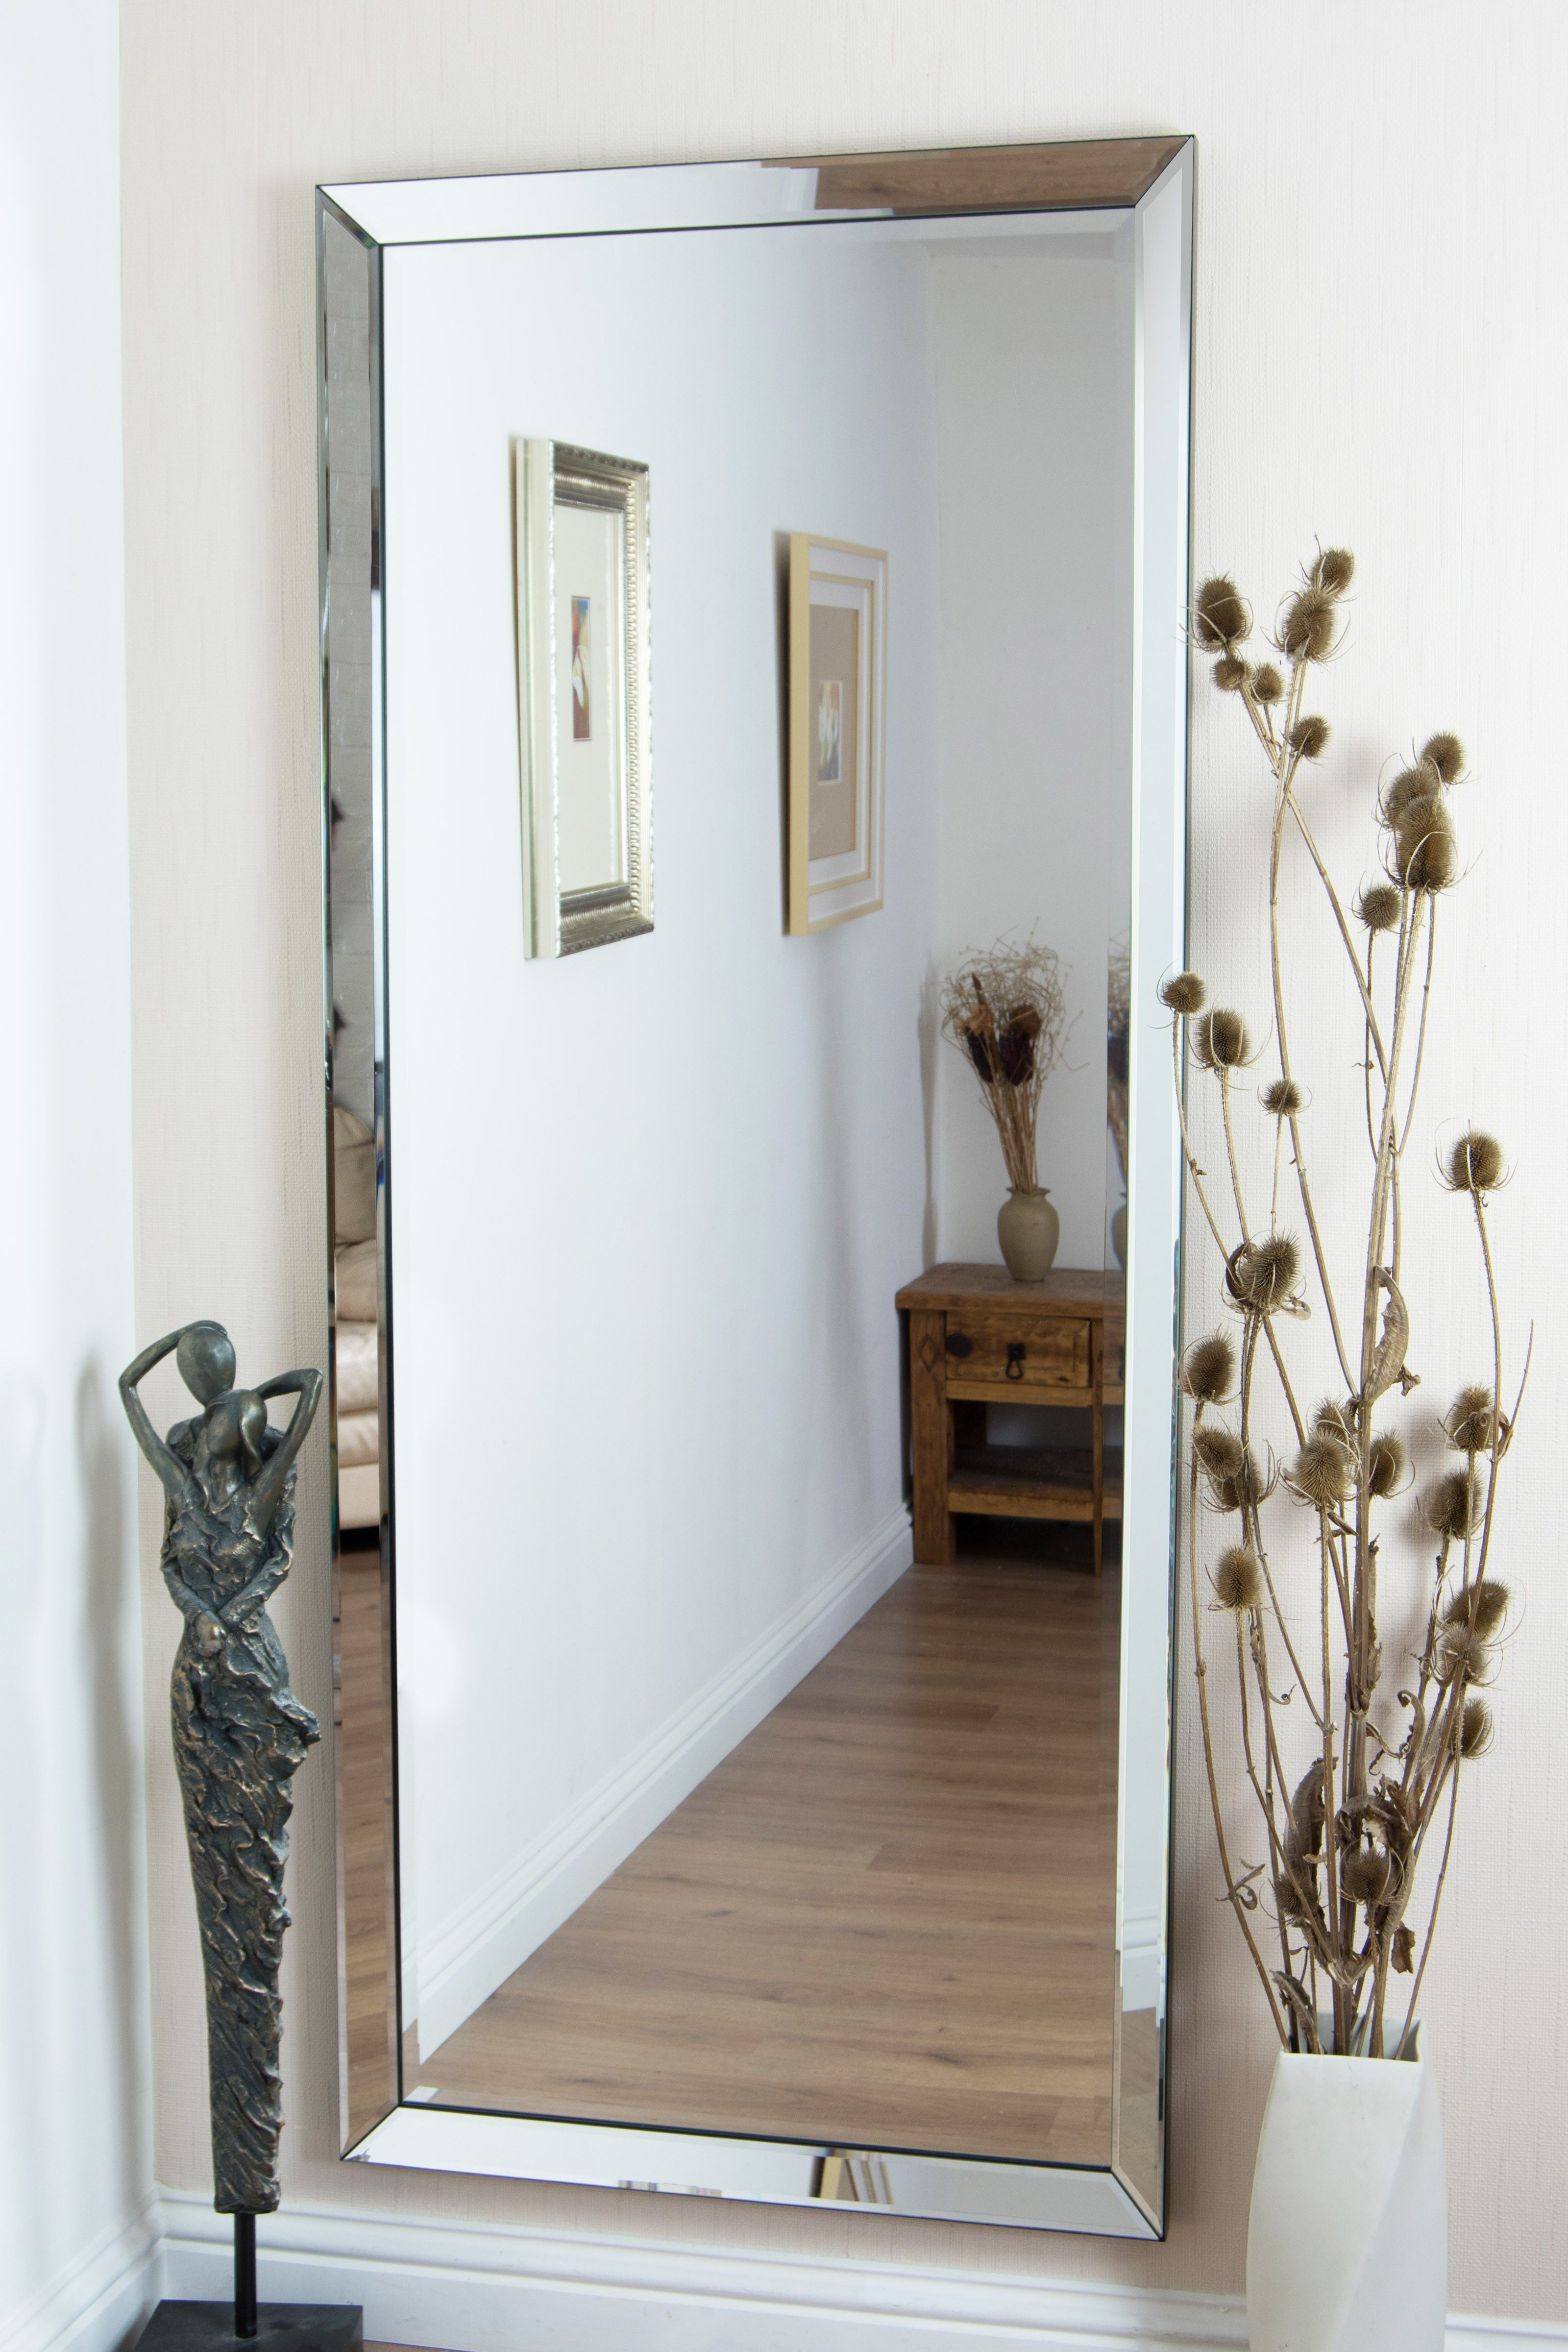 Long Rectangular Wall Mirrors Intended For Famous Large Rectangular Mirrors For Walls (View 3 of 20)